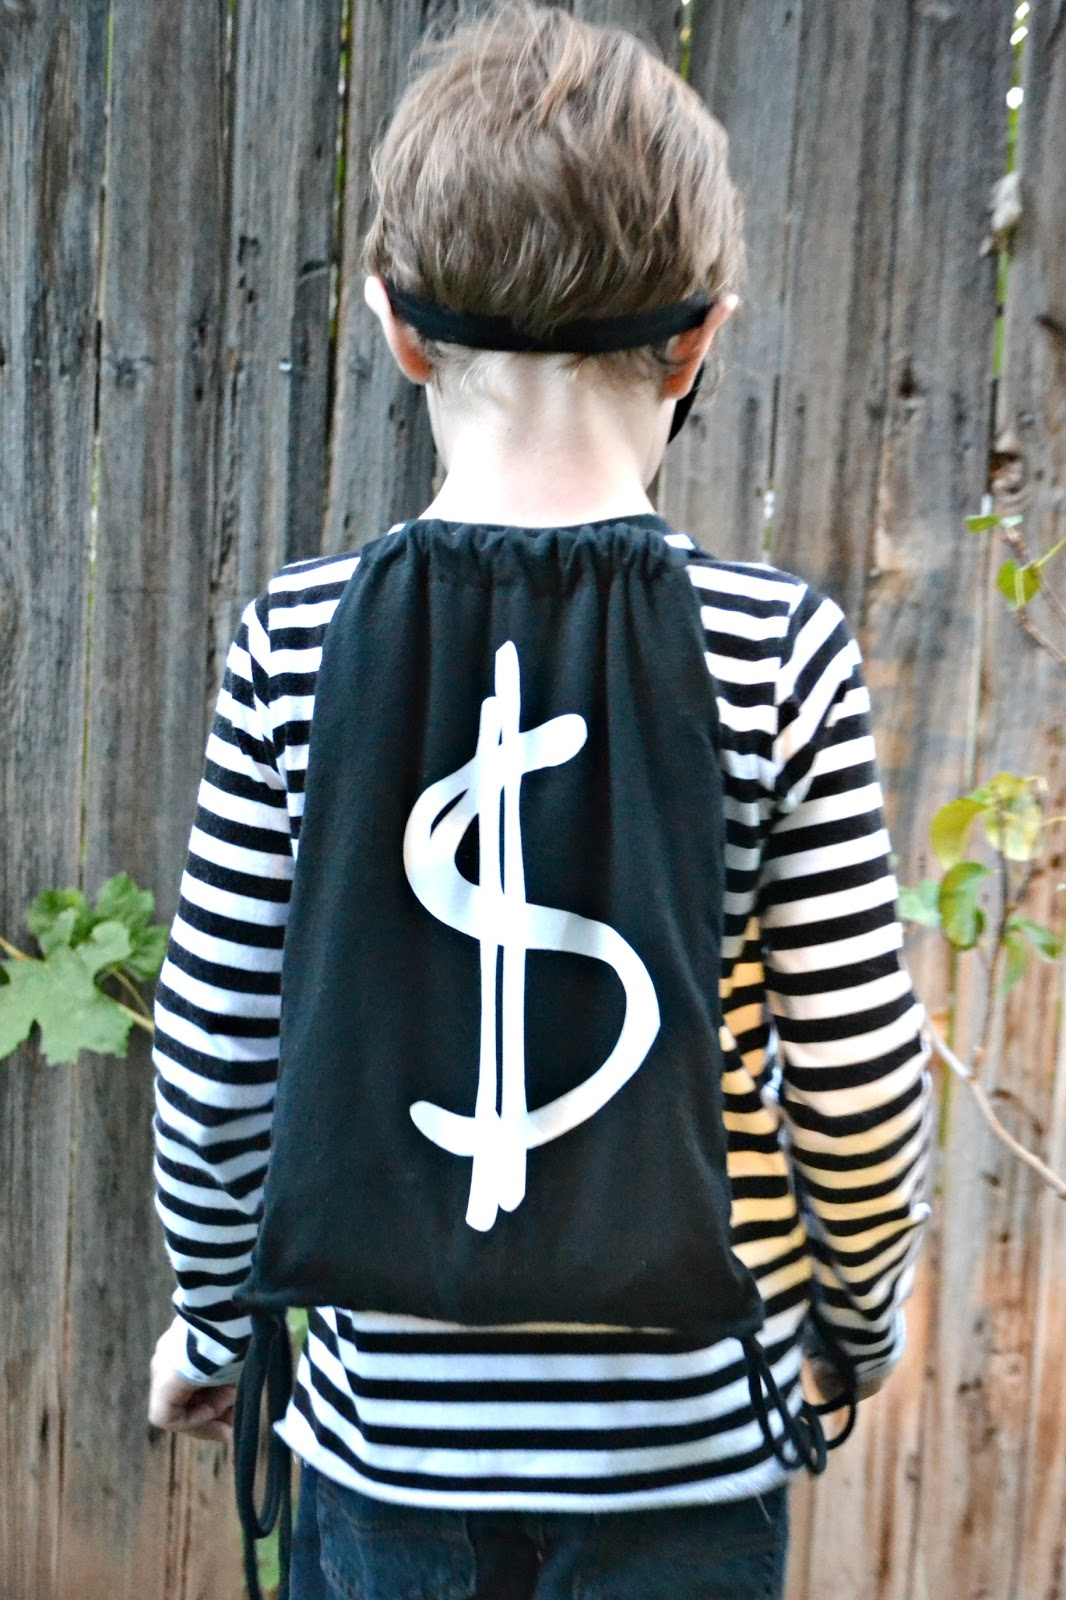 Diy Bank Robber Shirt Paisley Roots Easy Diy Halloween Costumes With Cricut